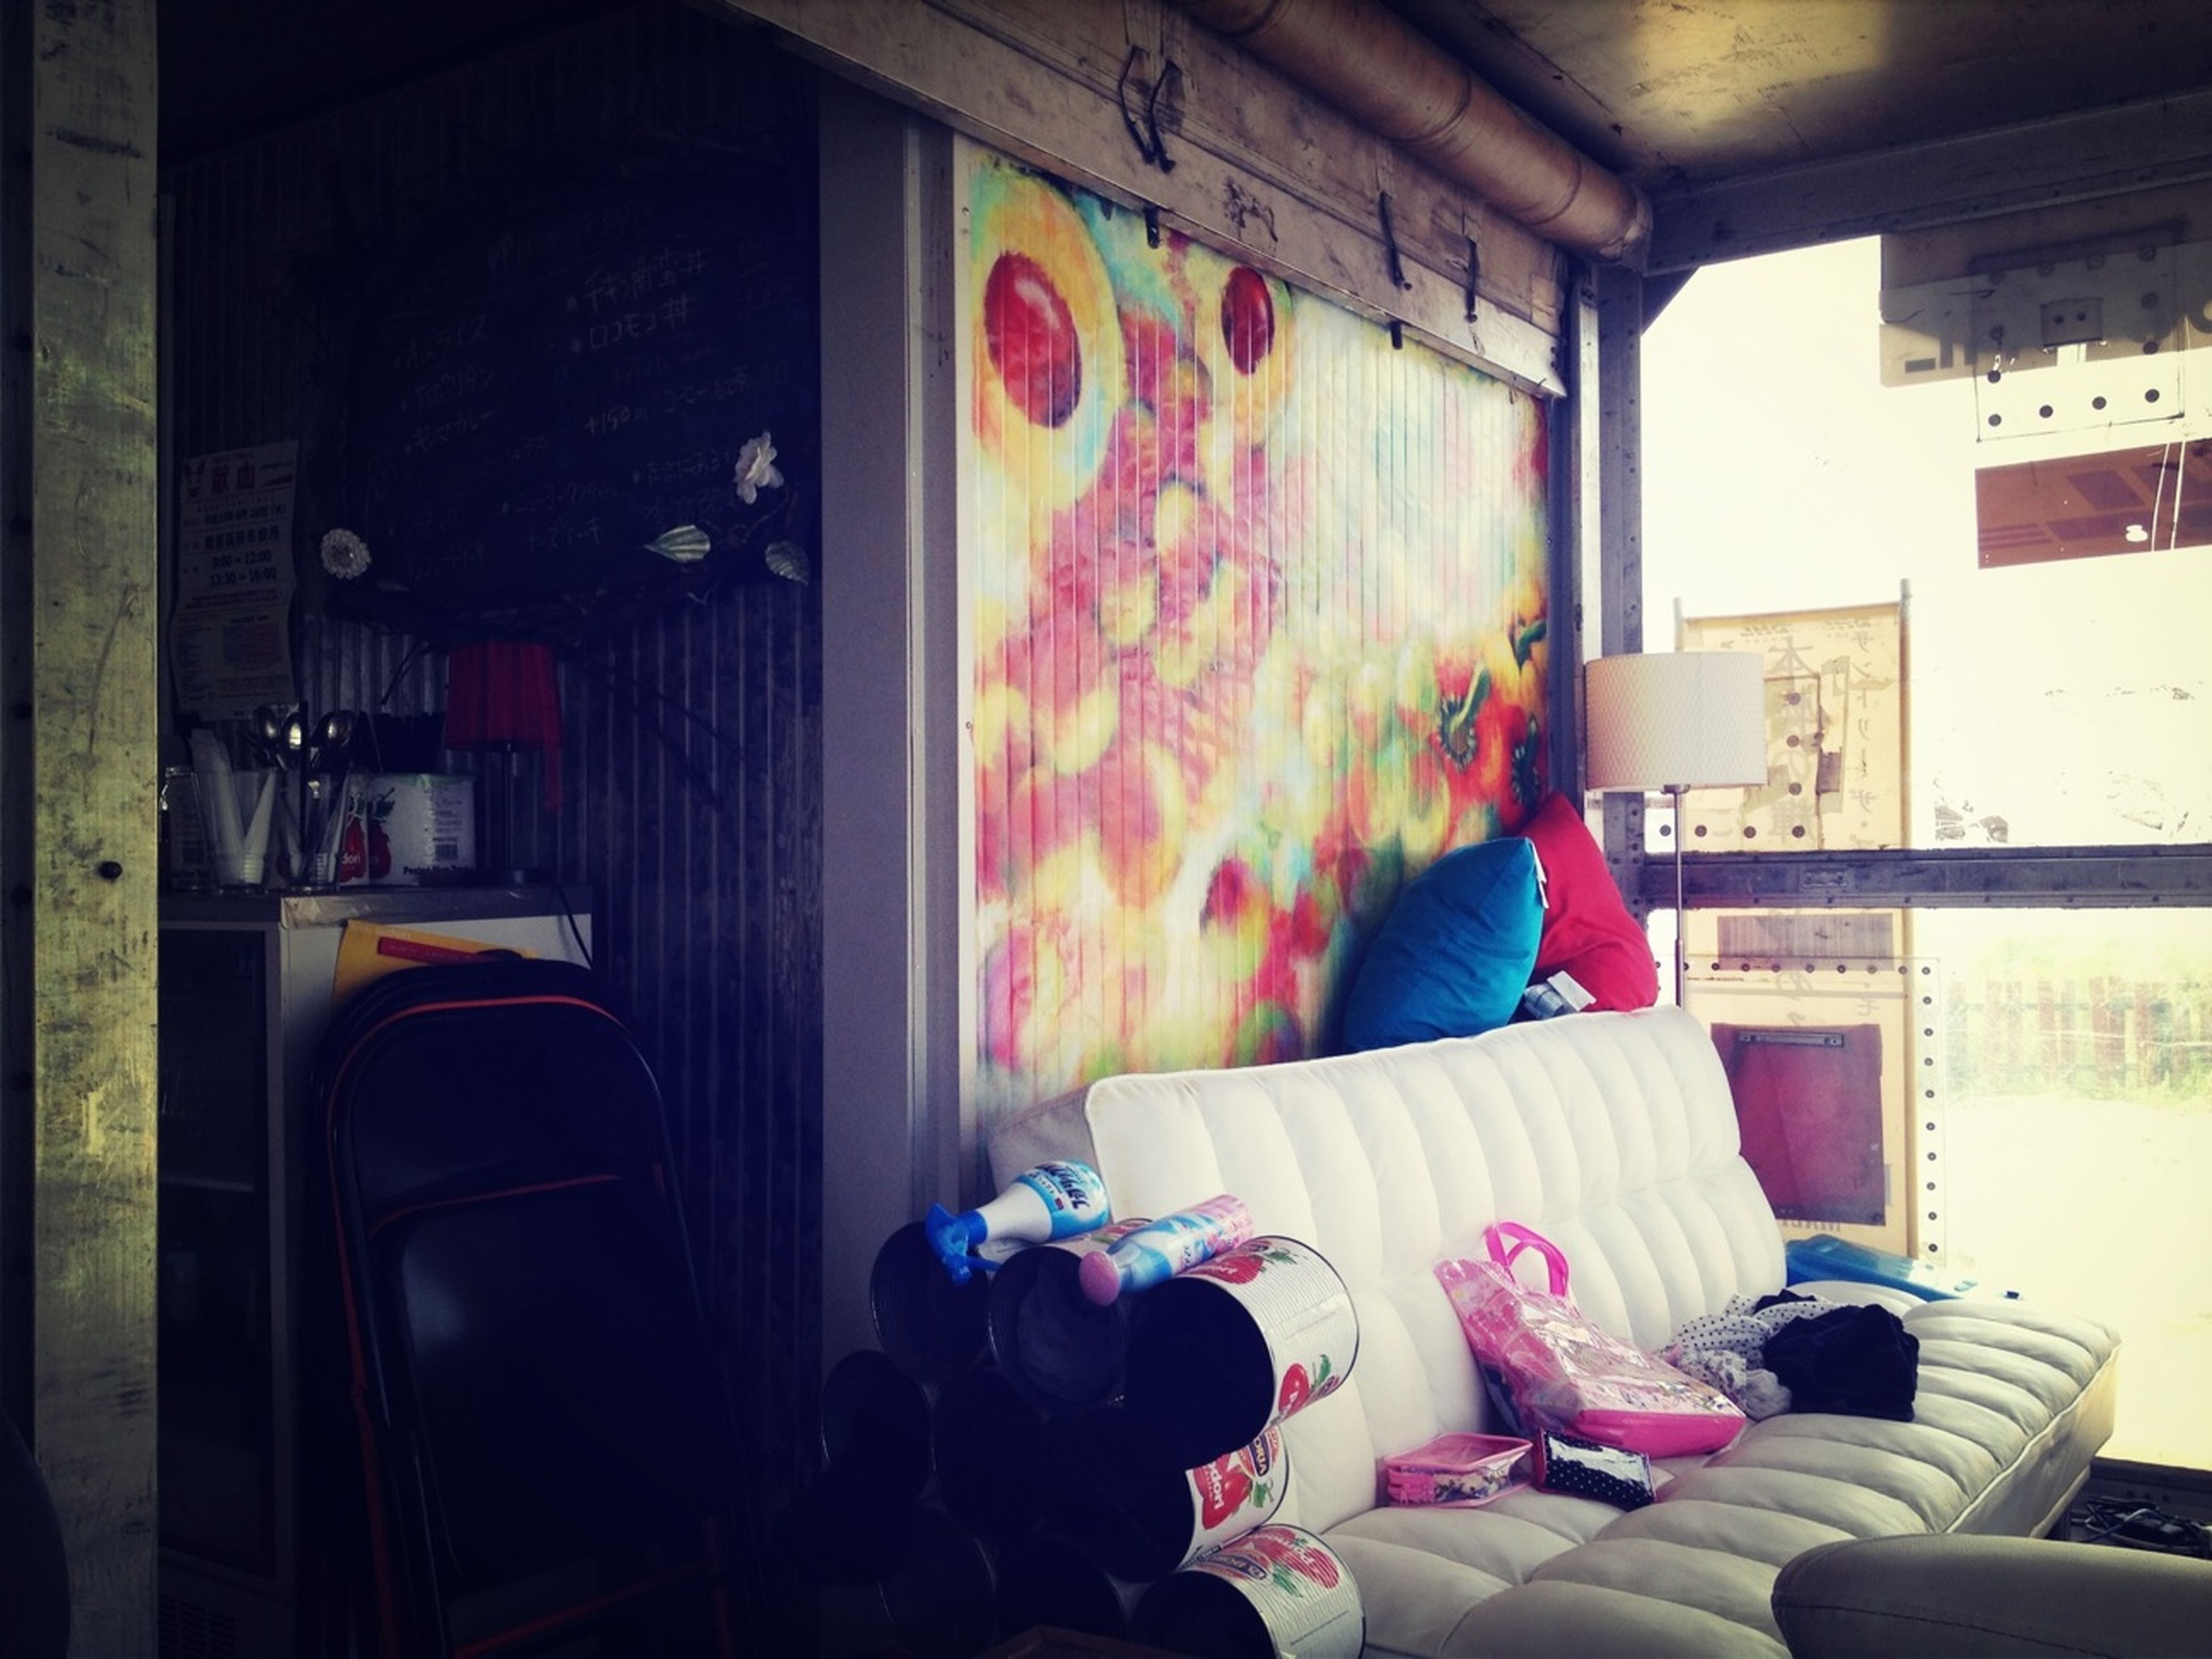 indoors, home interior, curtain, window, absence, multi colored, house, built structure, book, chair, architecture, clothing, bed, bedroom, sofa, open, graffiti, empty, day, domestic room